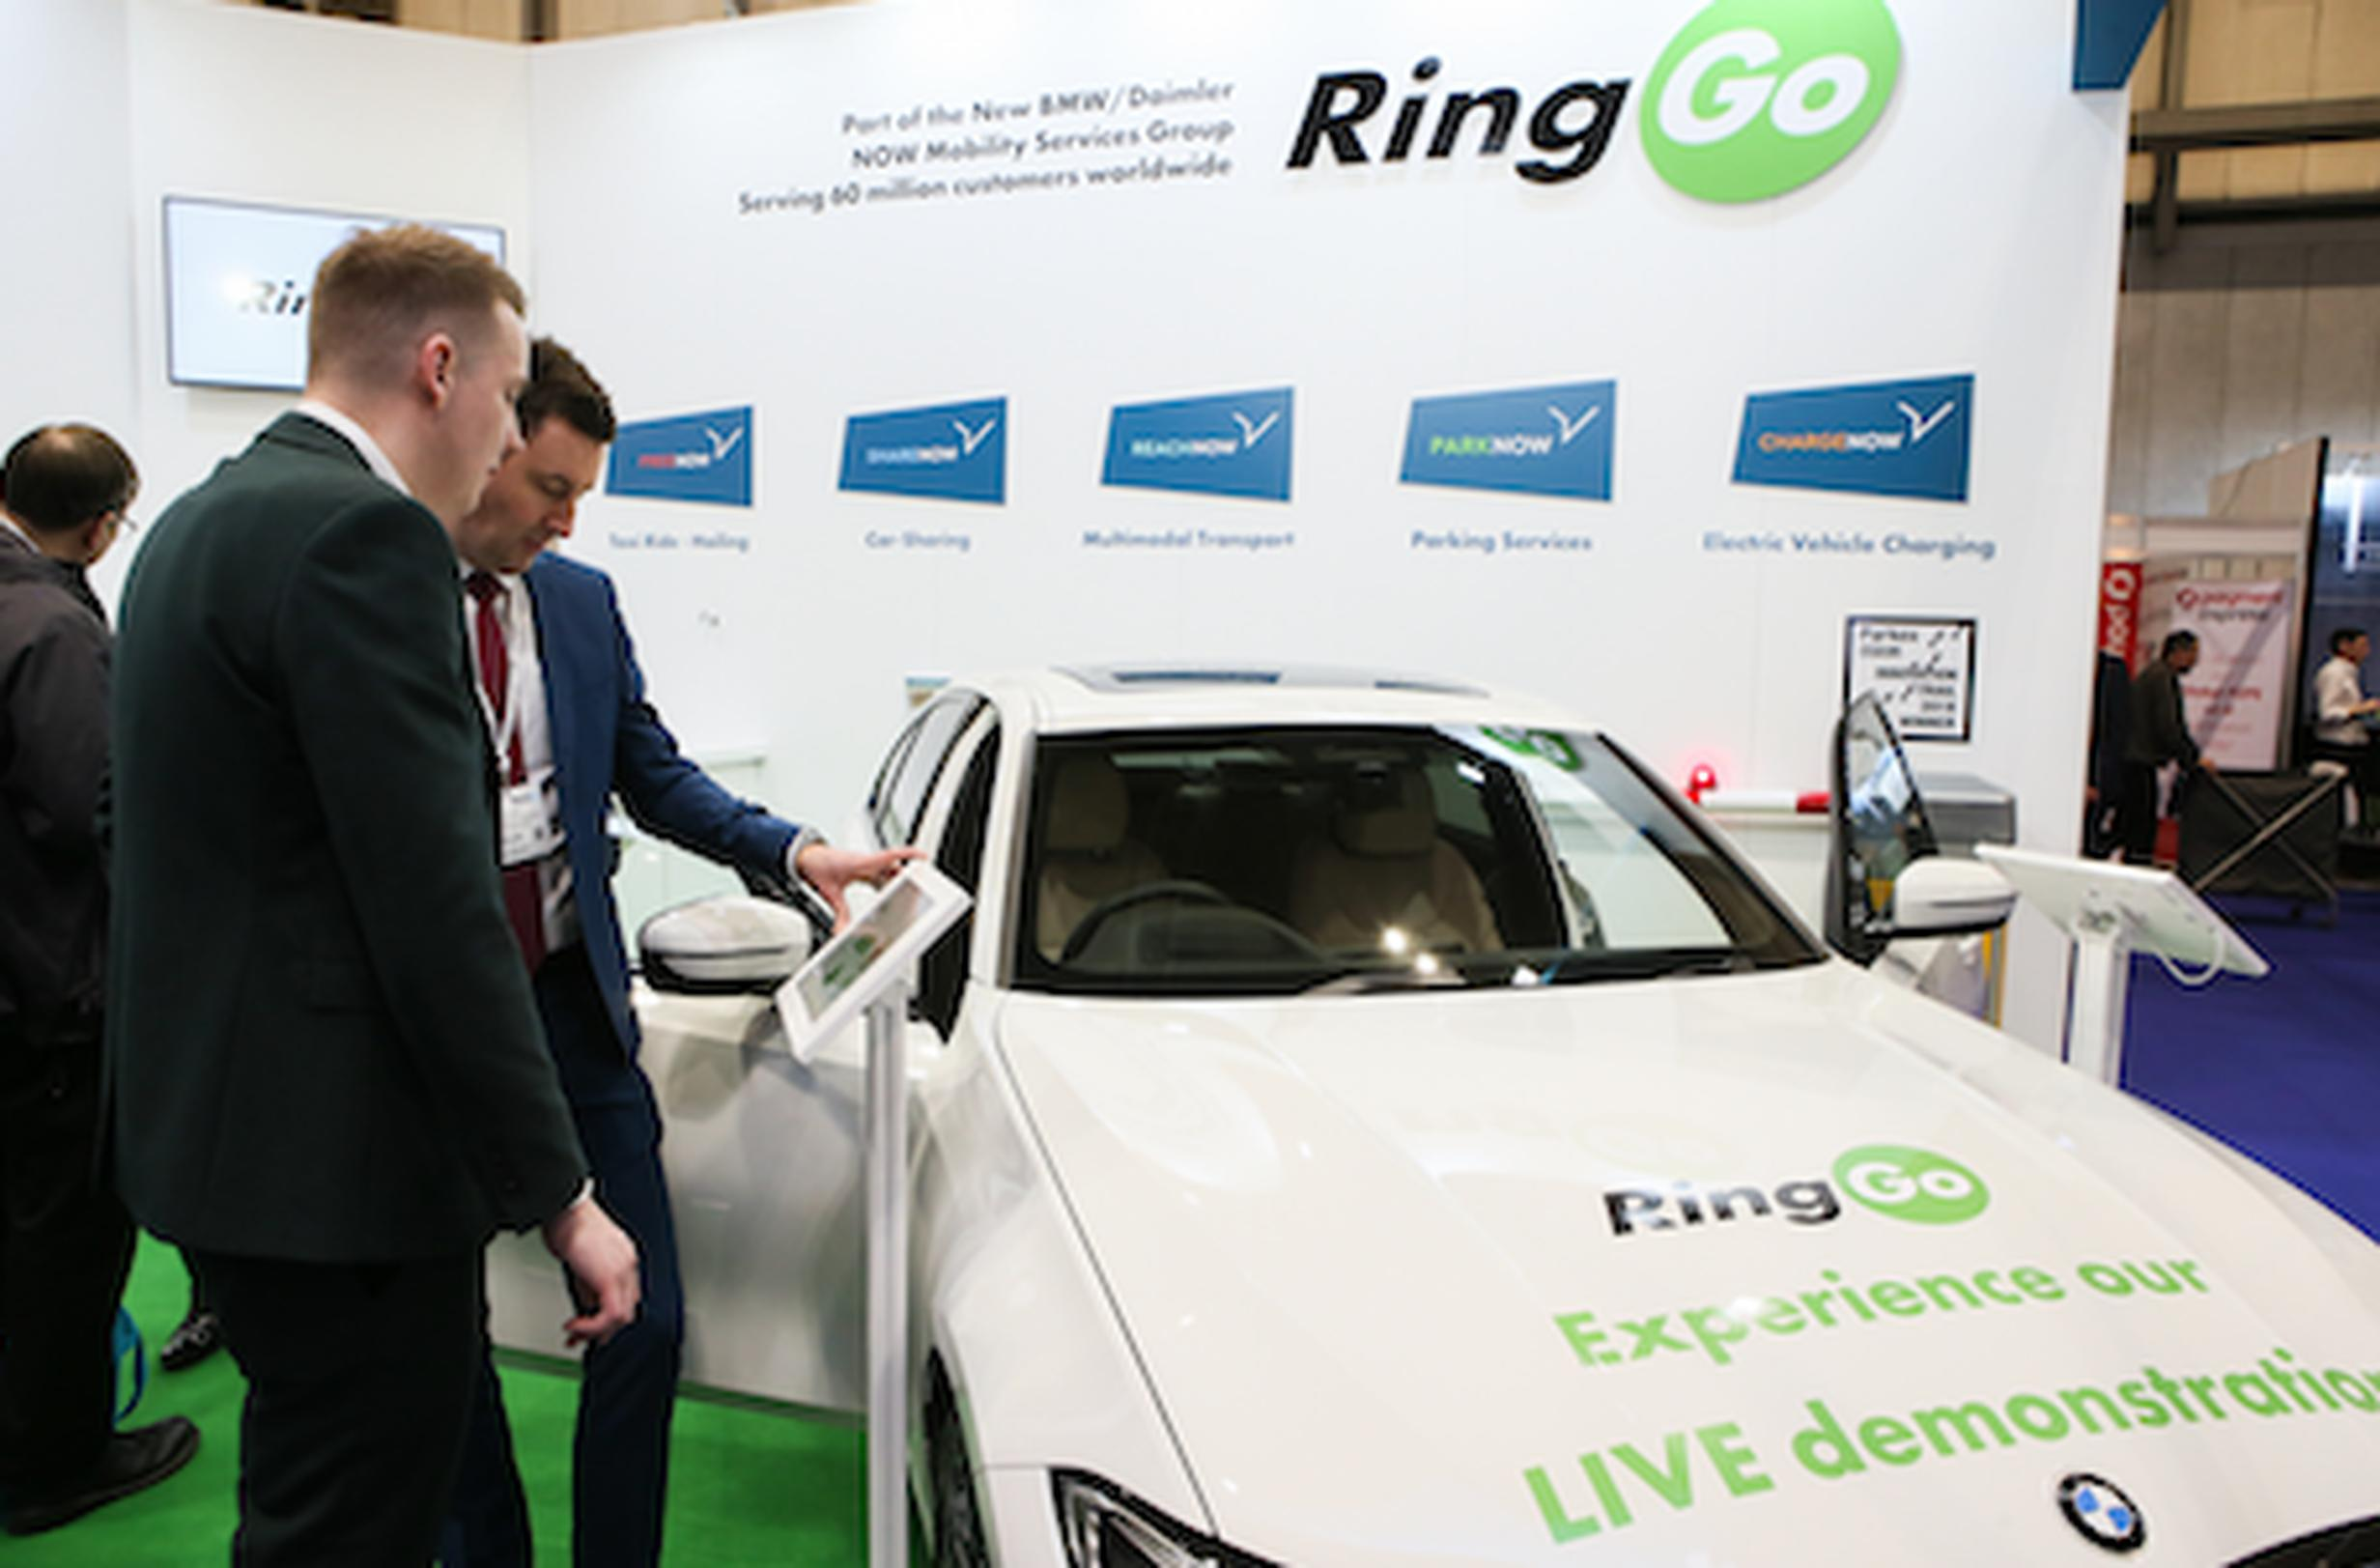 RingGo demonstated its voice-activated in-car services at Parkex using a BMW 3 Series